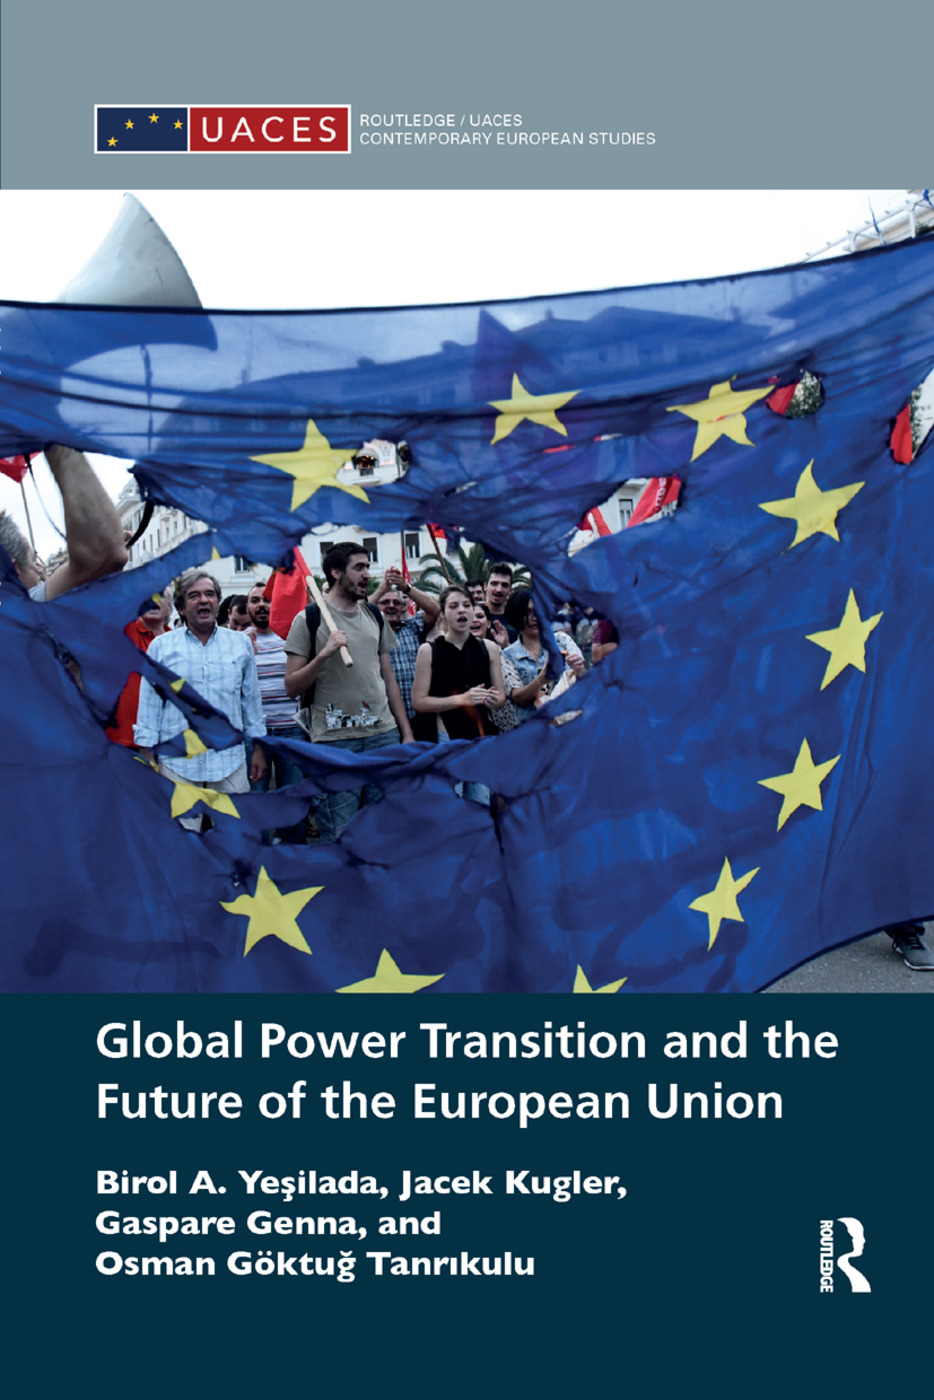 Global Power Transition and the Future of the European Union